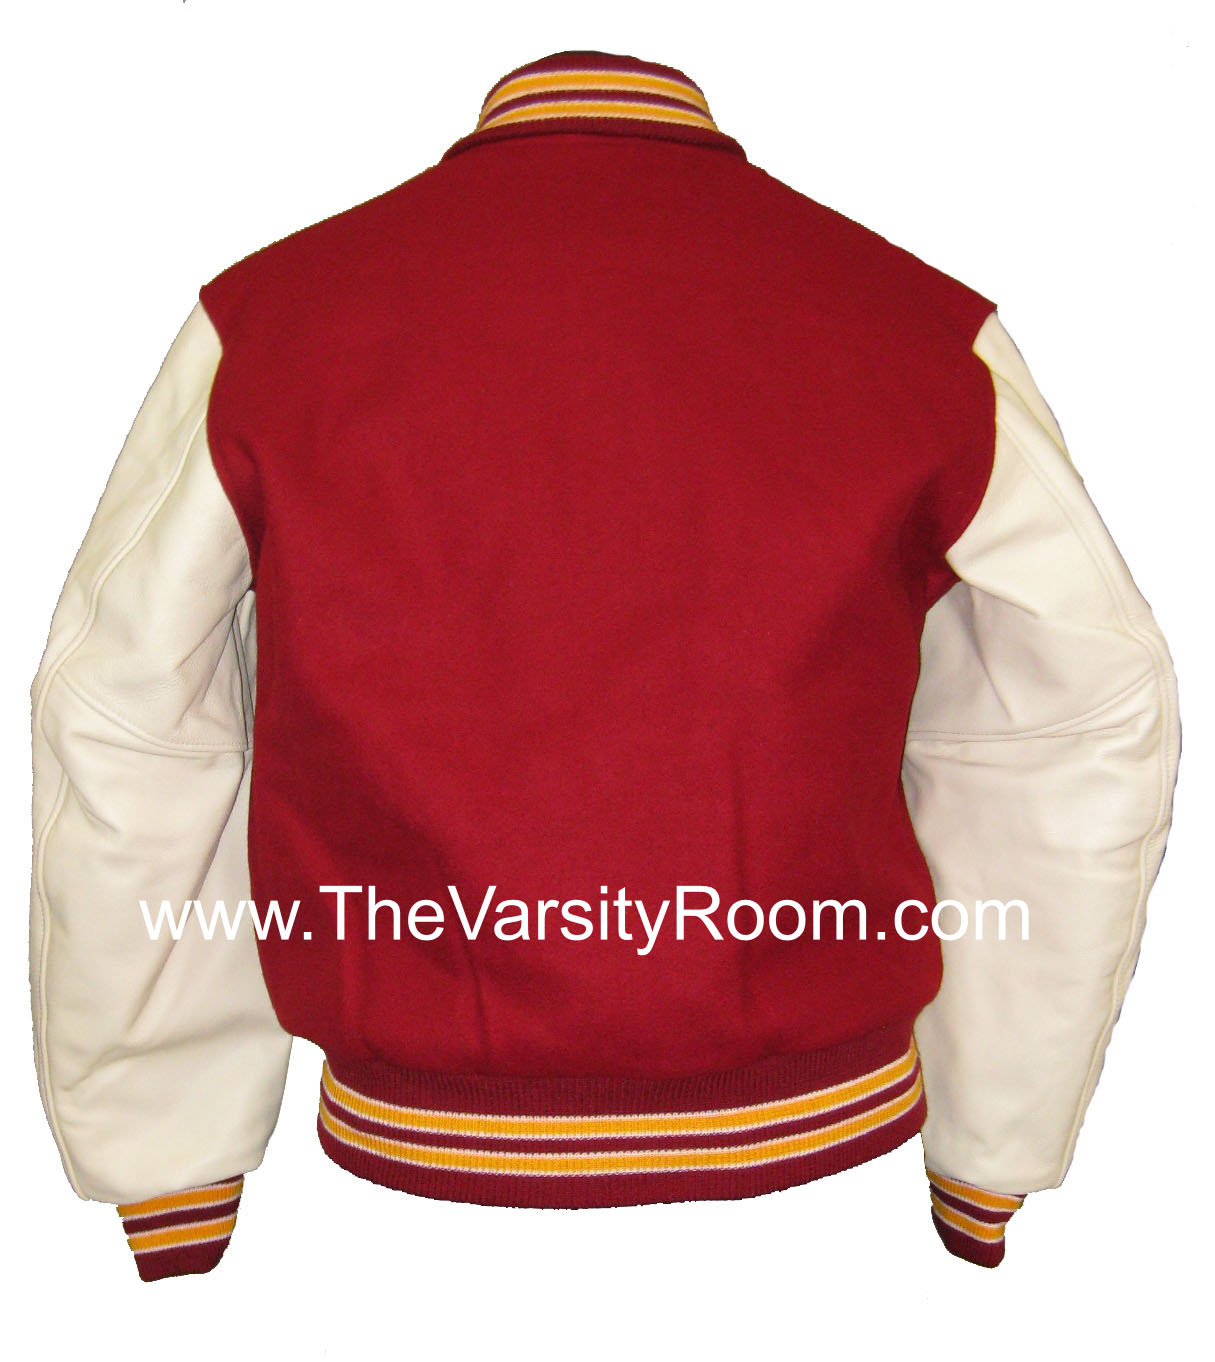 how to clean a letterman jacket